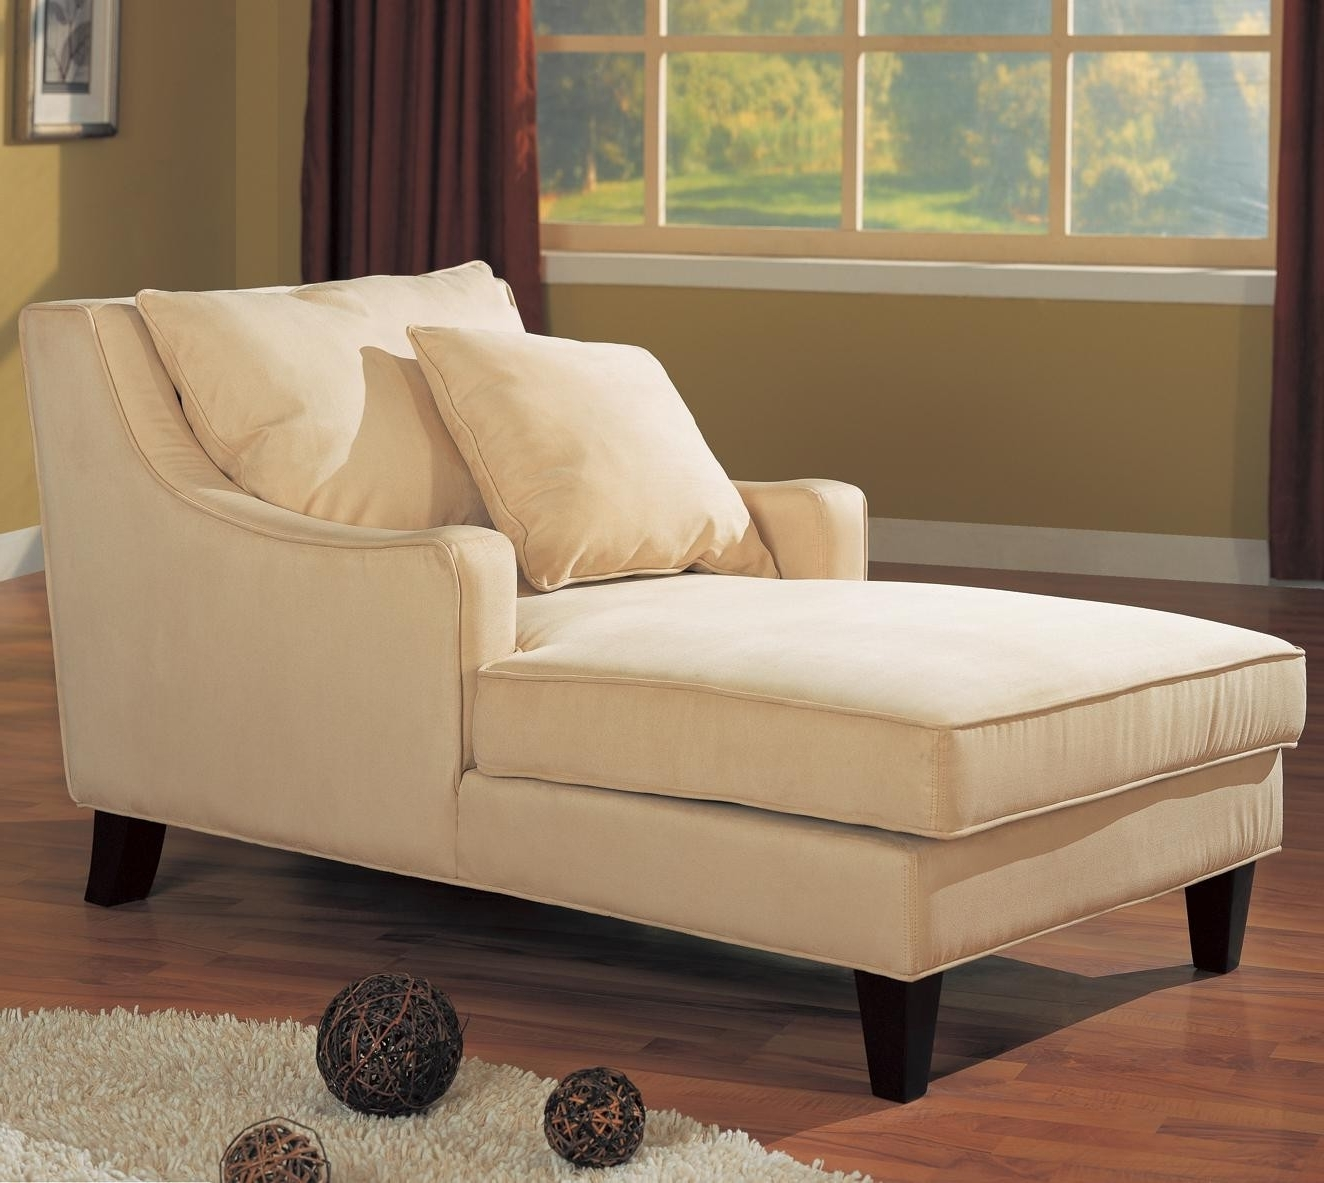 Accent Seating Microfiber Chaise Lounge Lowest Price – Sofa With Popular Chaise Lounge Chairs In Canada (View 14 of 15)